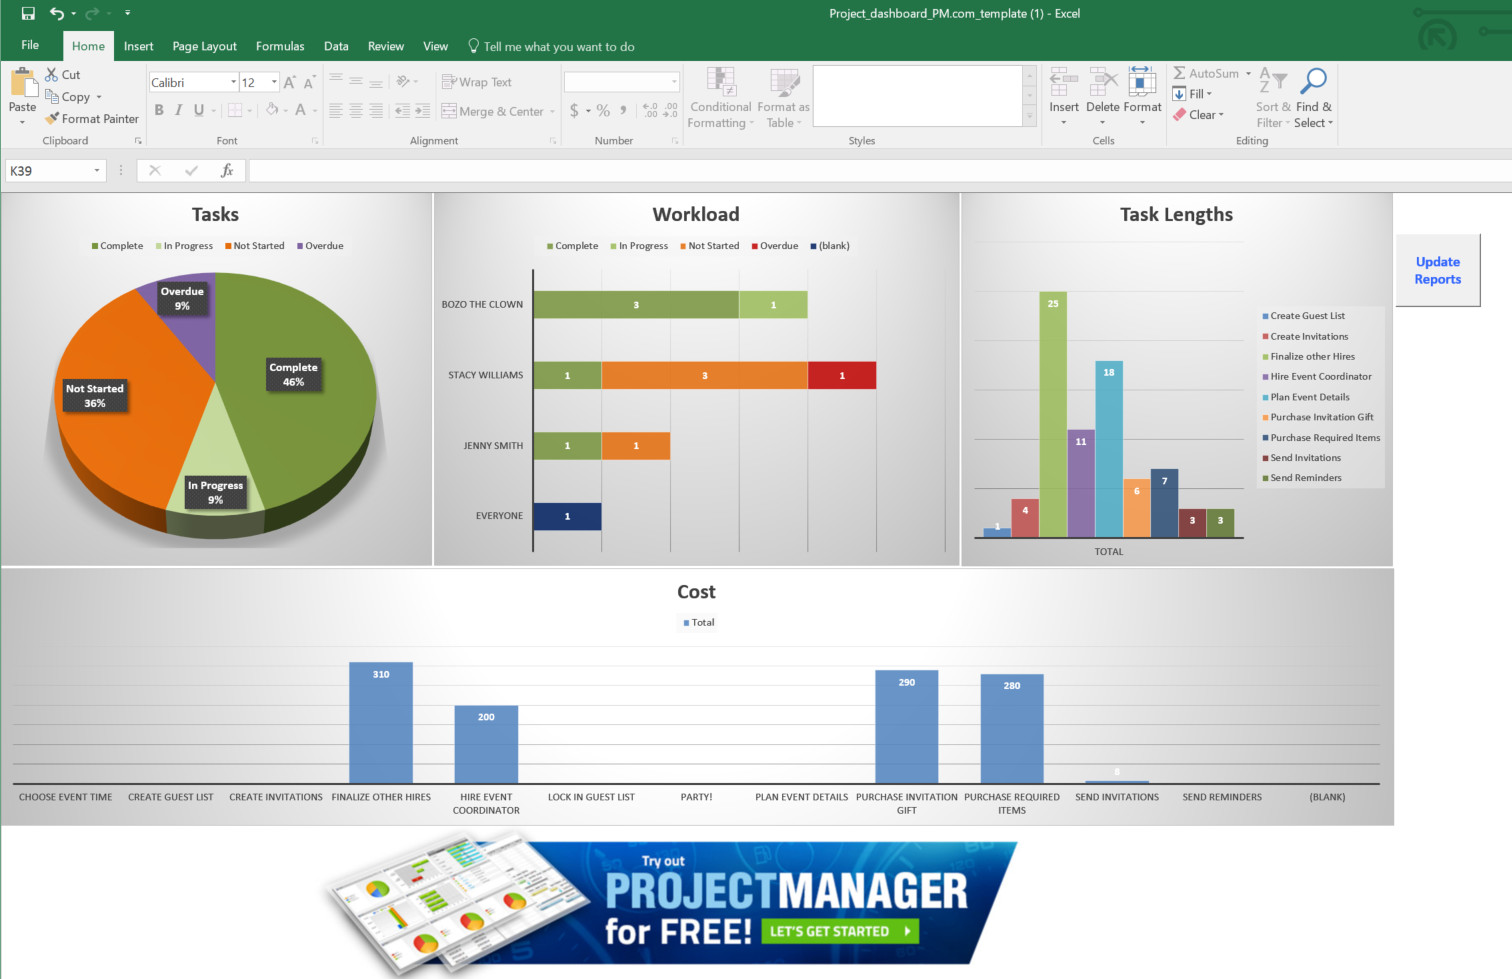 Blank Ms Excel Templates For Project Management In Ms Excel Templates For Project Management In Workshhet